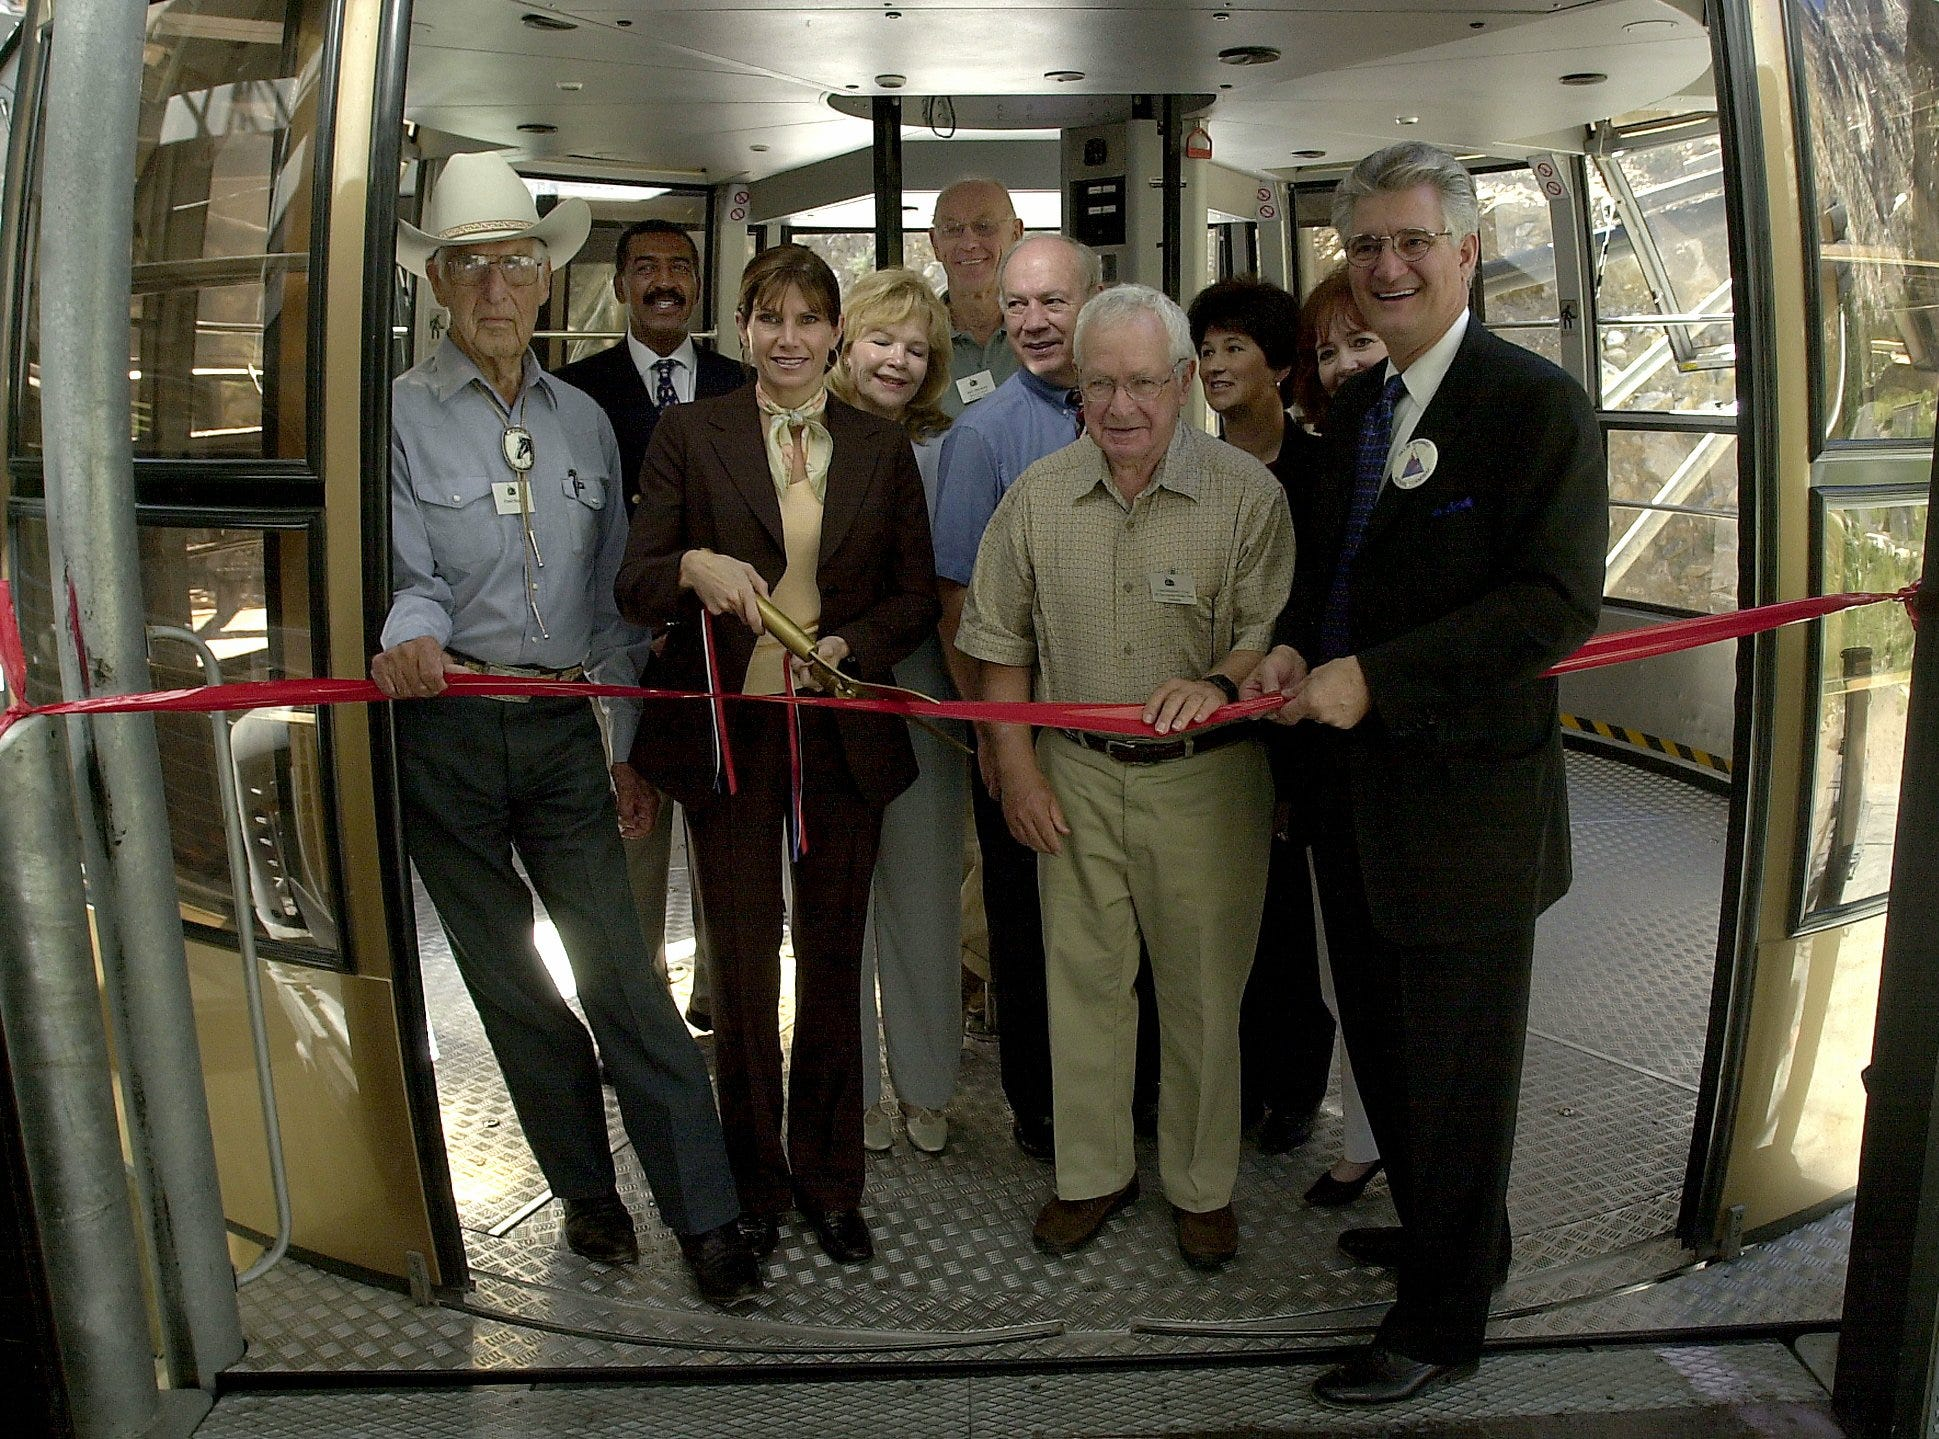 The Palm Springs Aerial Tramway's 40th anniversary is commemorated in this September 2003 photo.